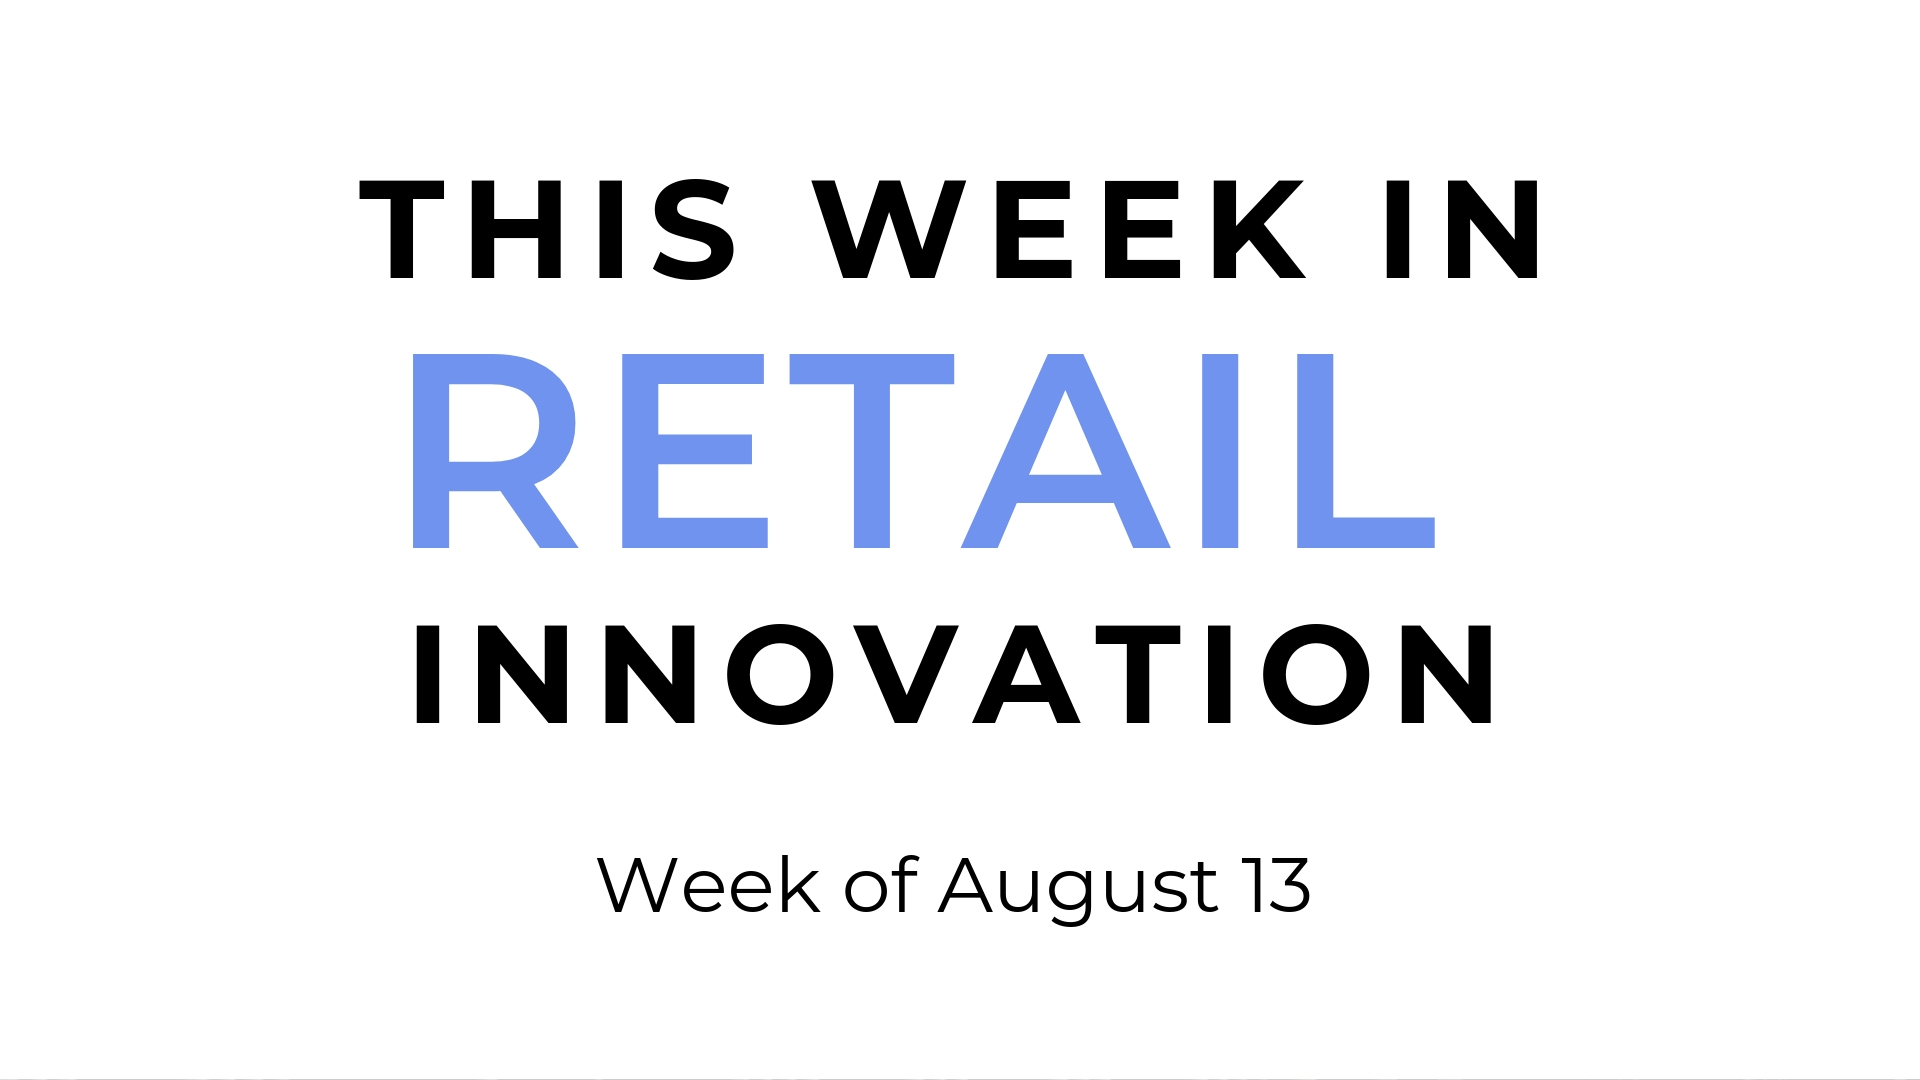 Perch_Content_This Week in Retail Innovation_R3_Macys_Walmart_Crypto